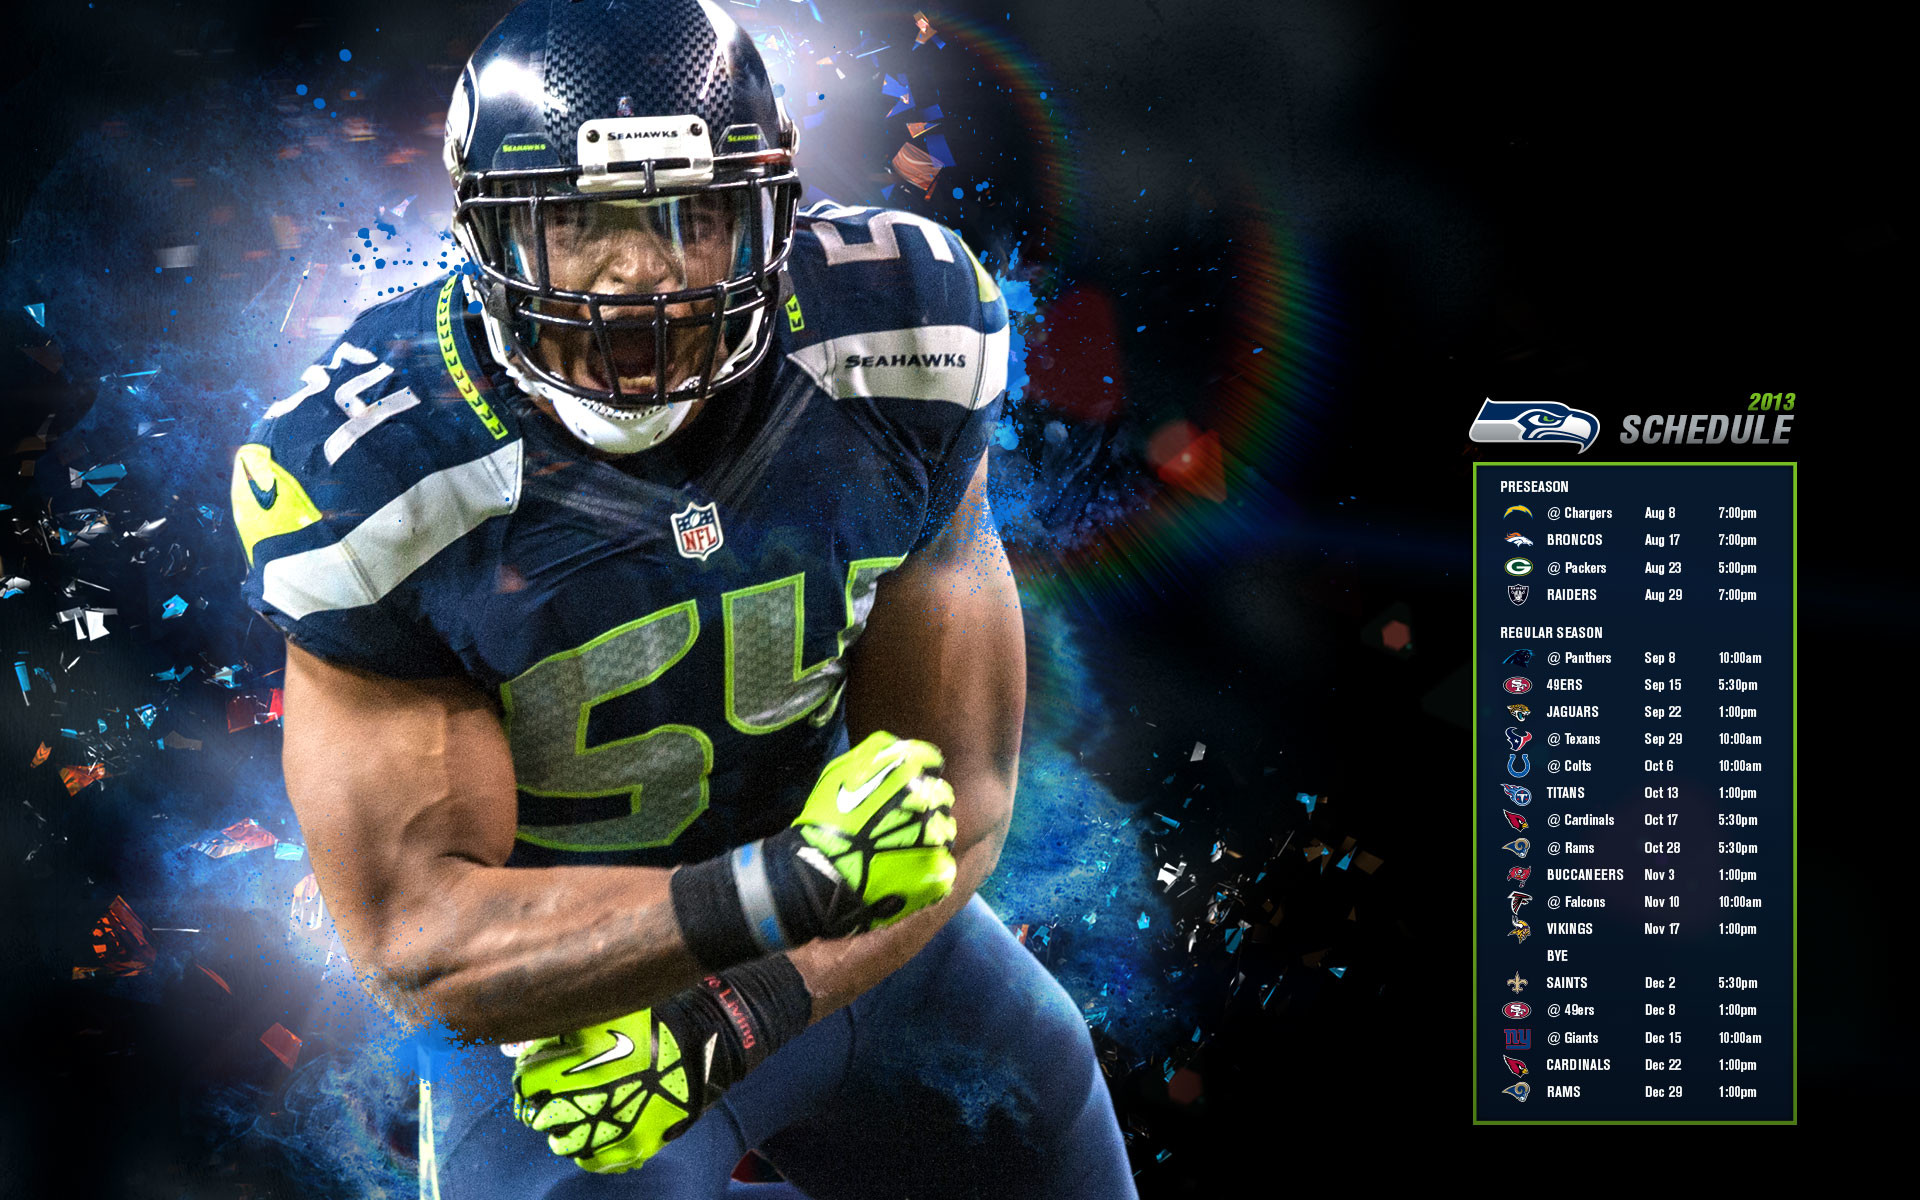 2018 Seahawks Wallpaper 63 Images